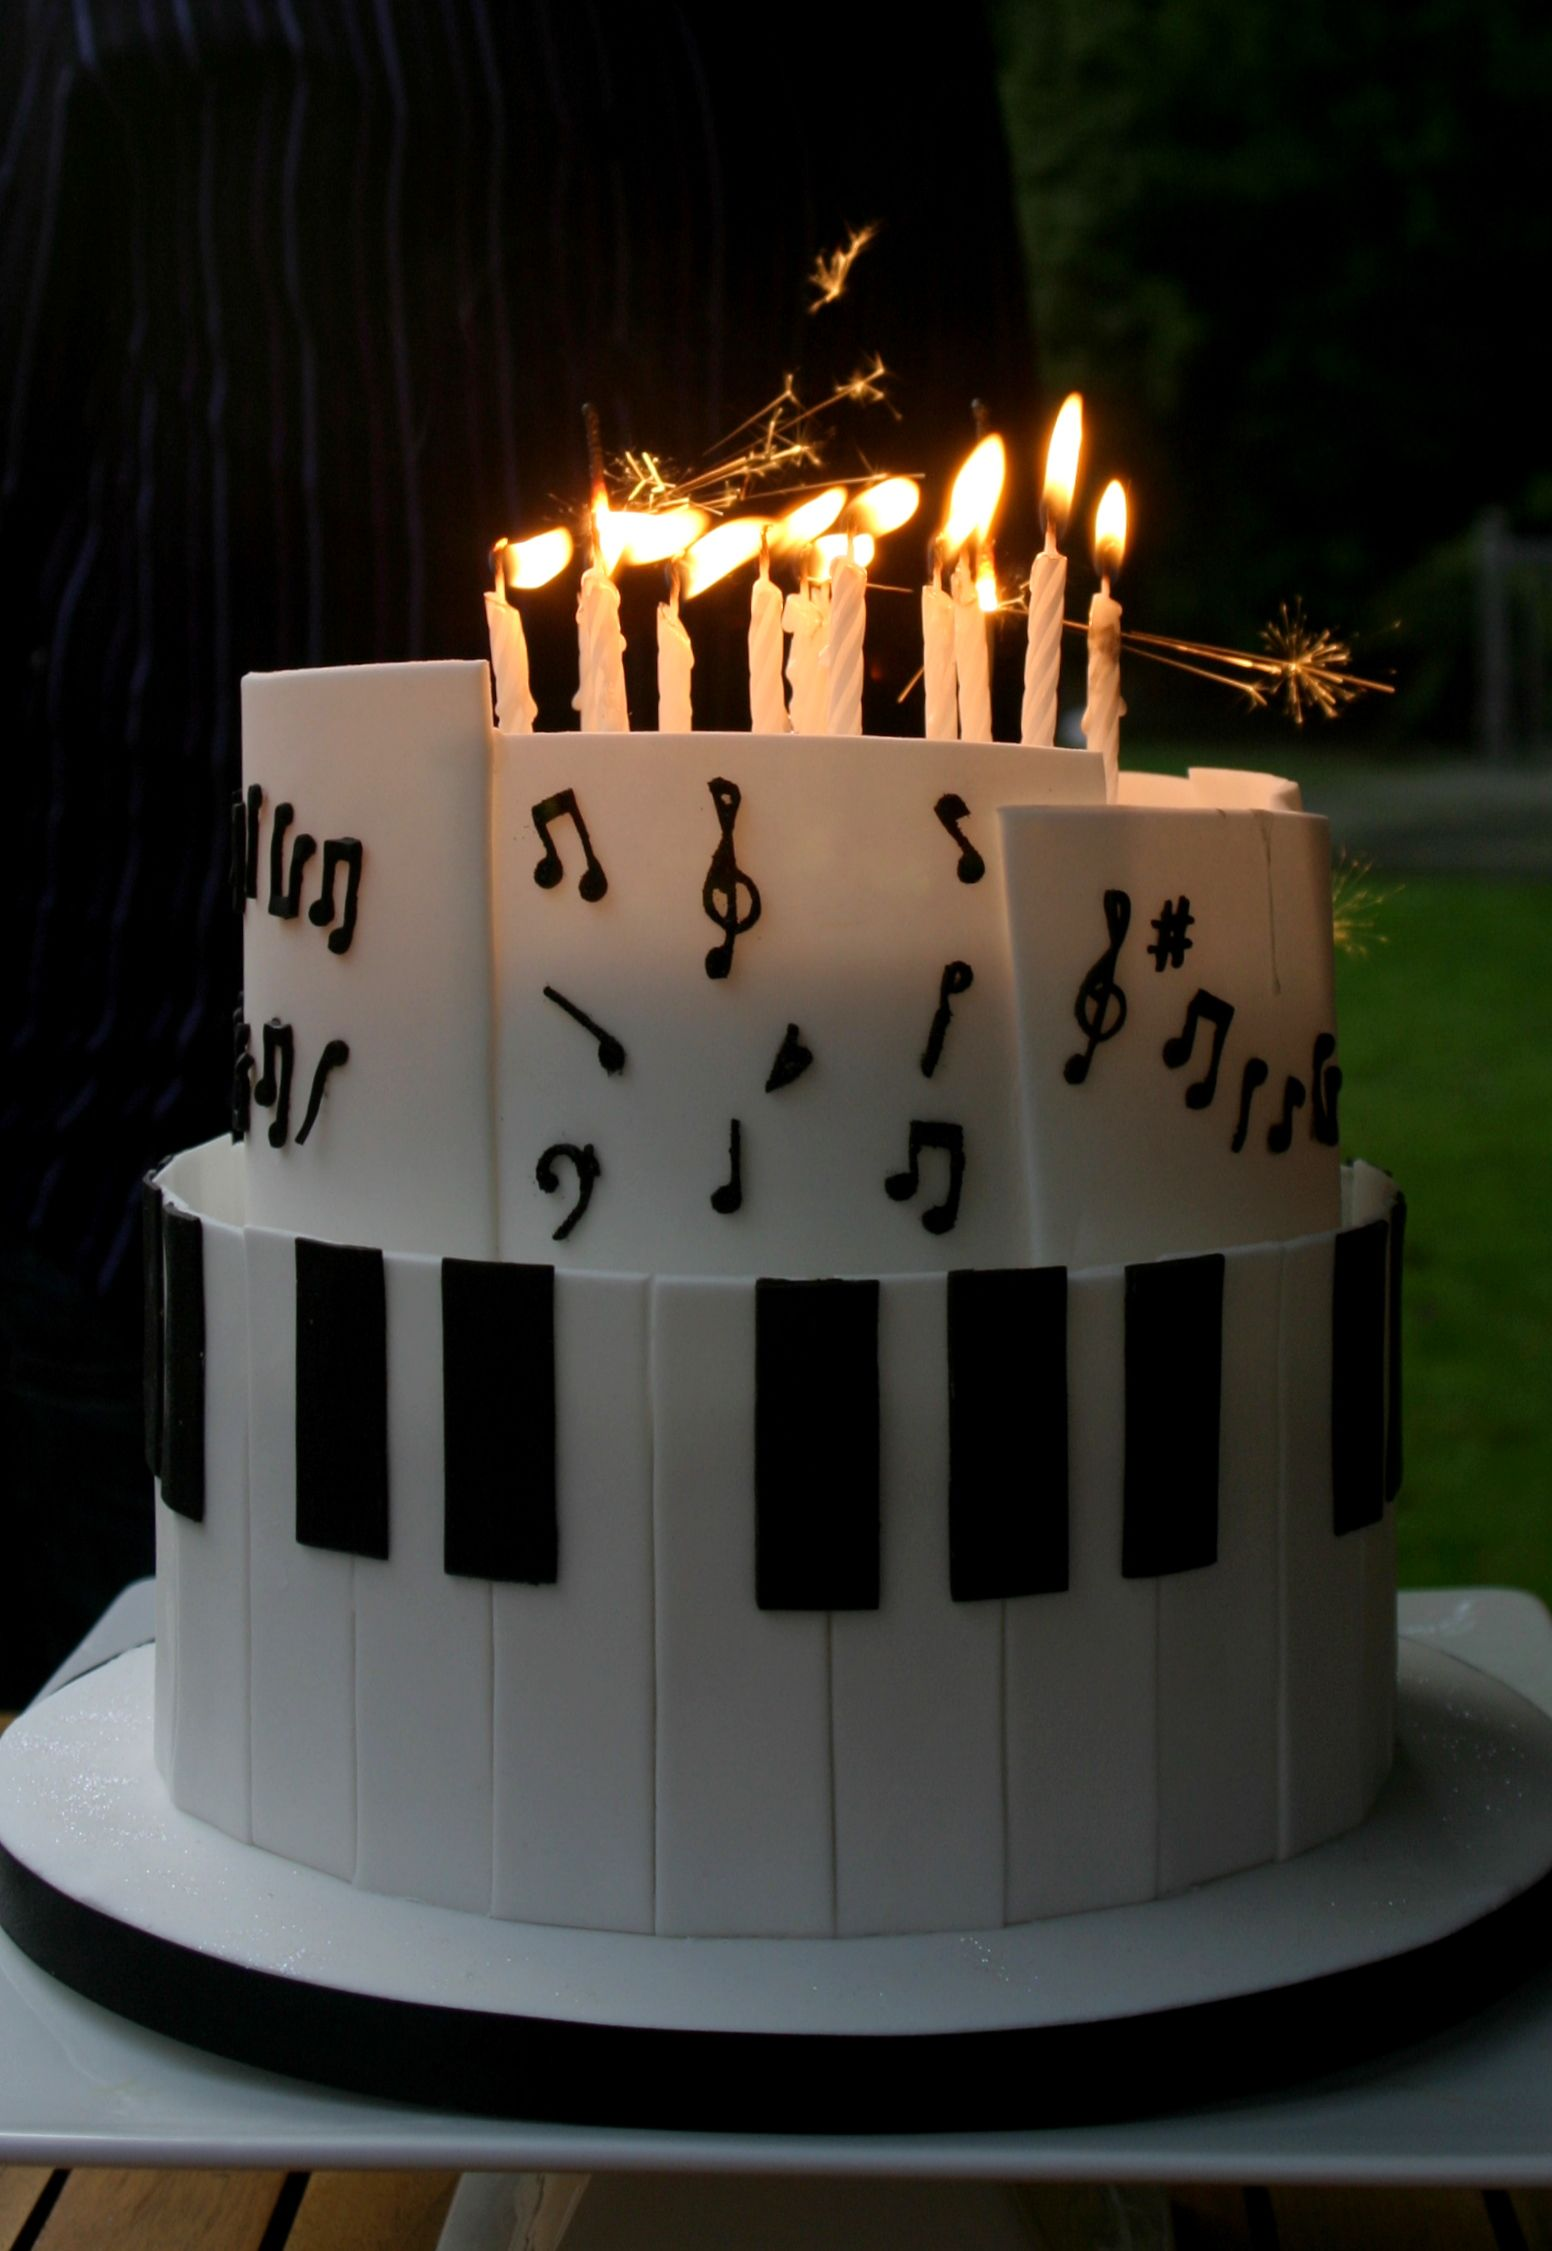 Some Lucky Piano Player Got This On Their Birthday With Images